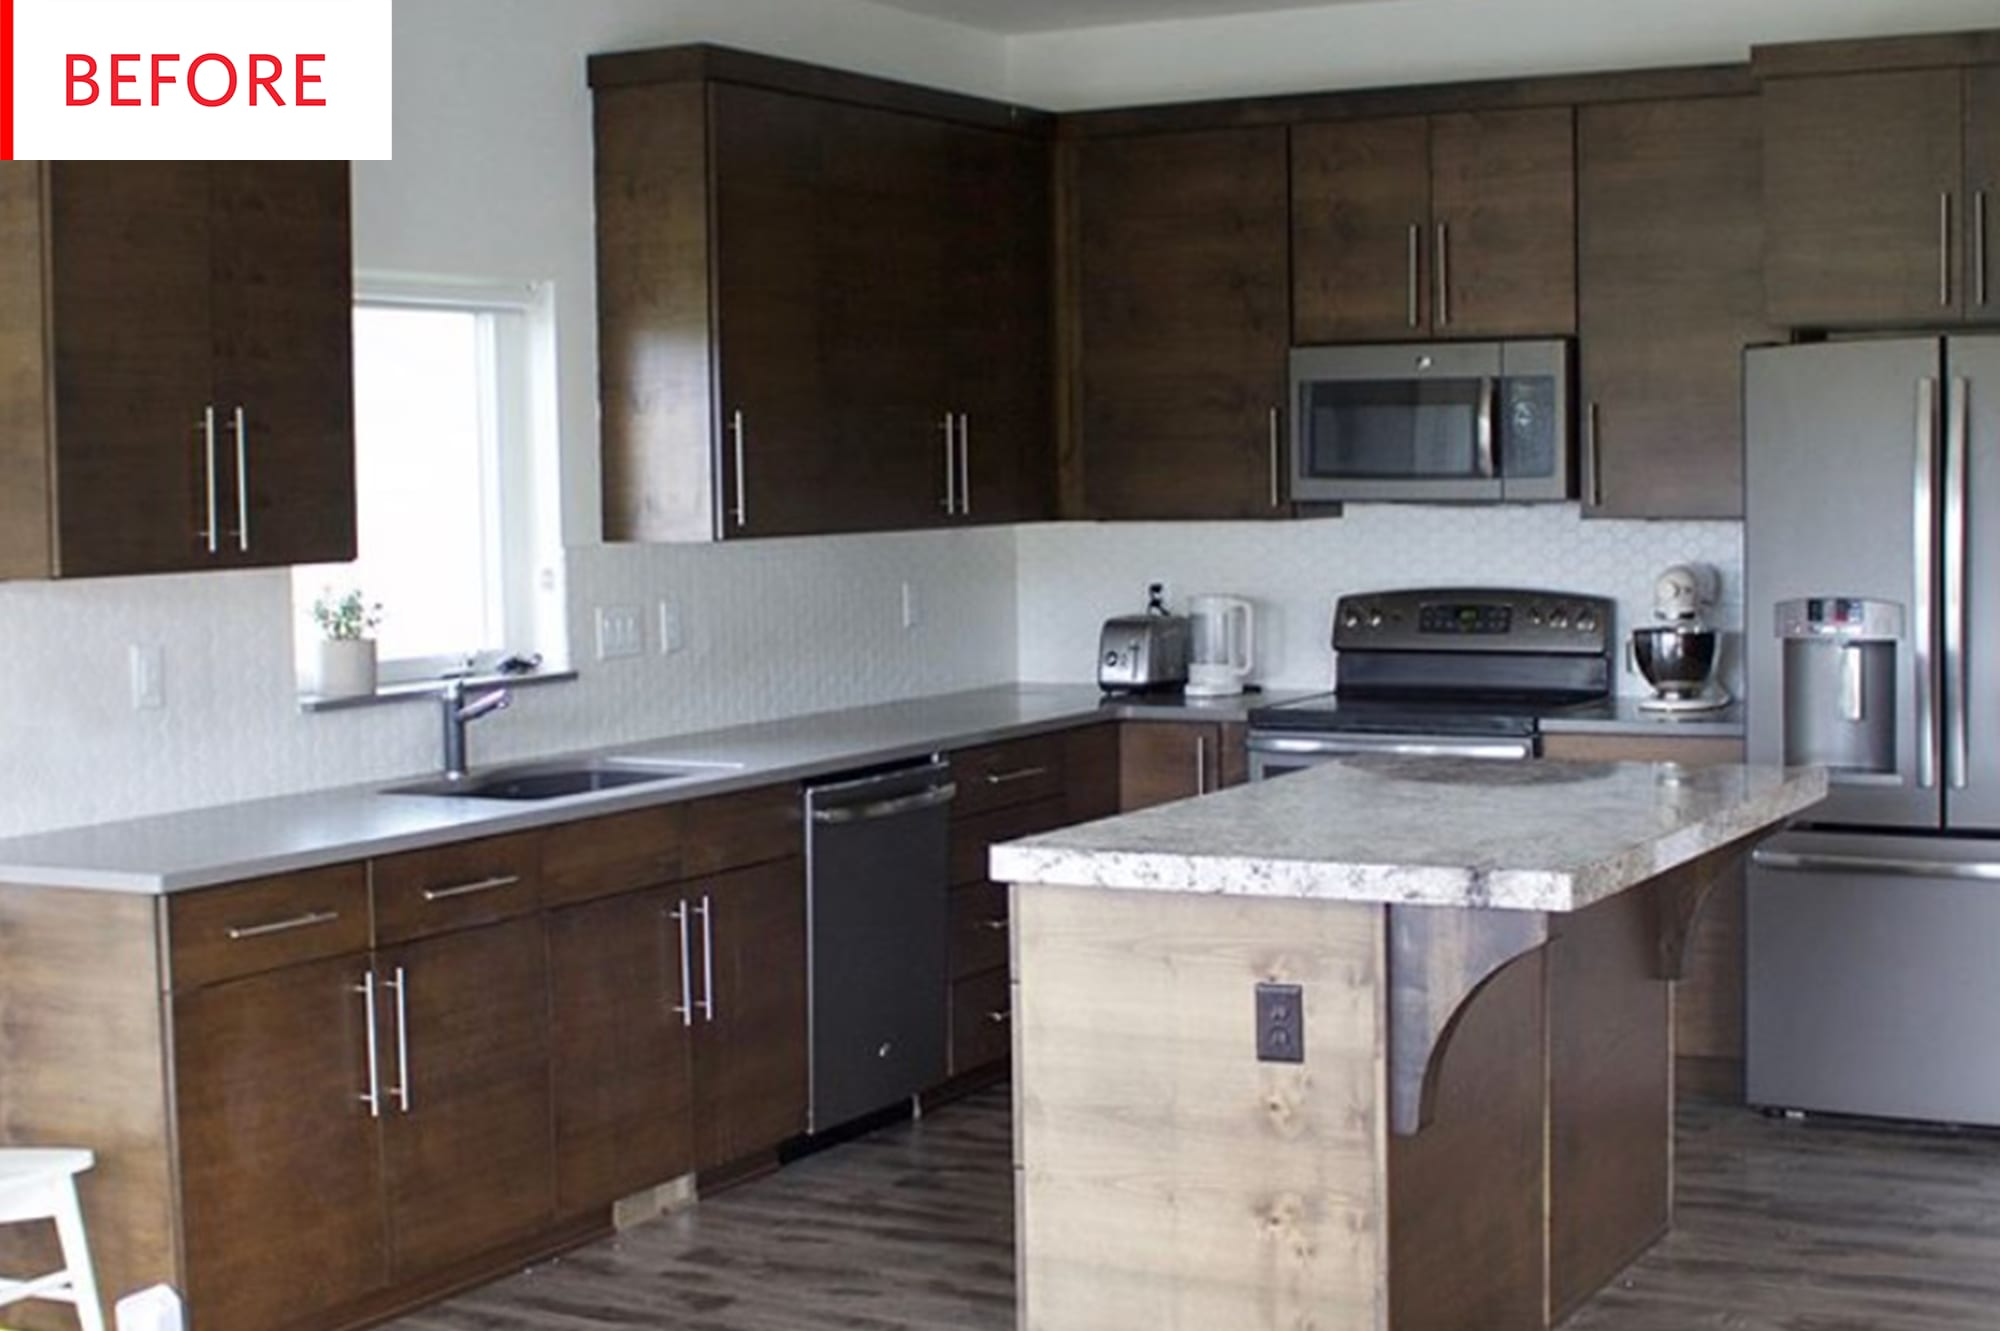 Before and After: We Could Not Have Predicted This Kitchen ...